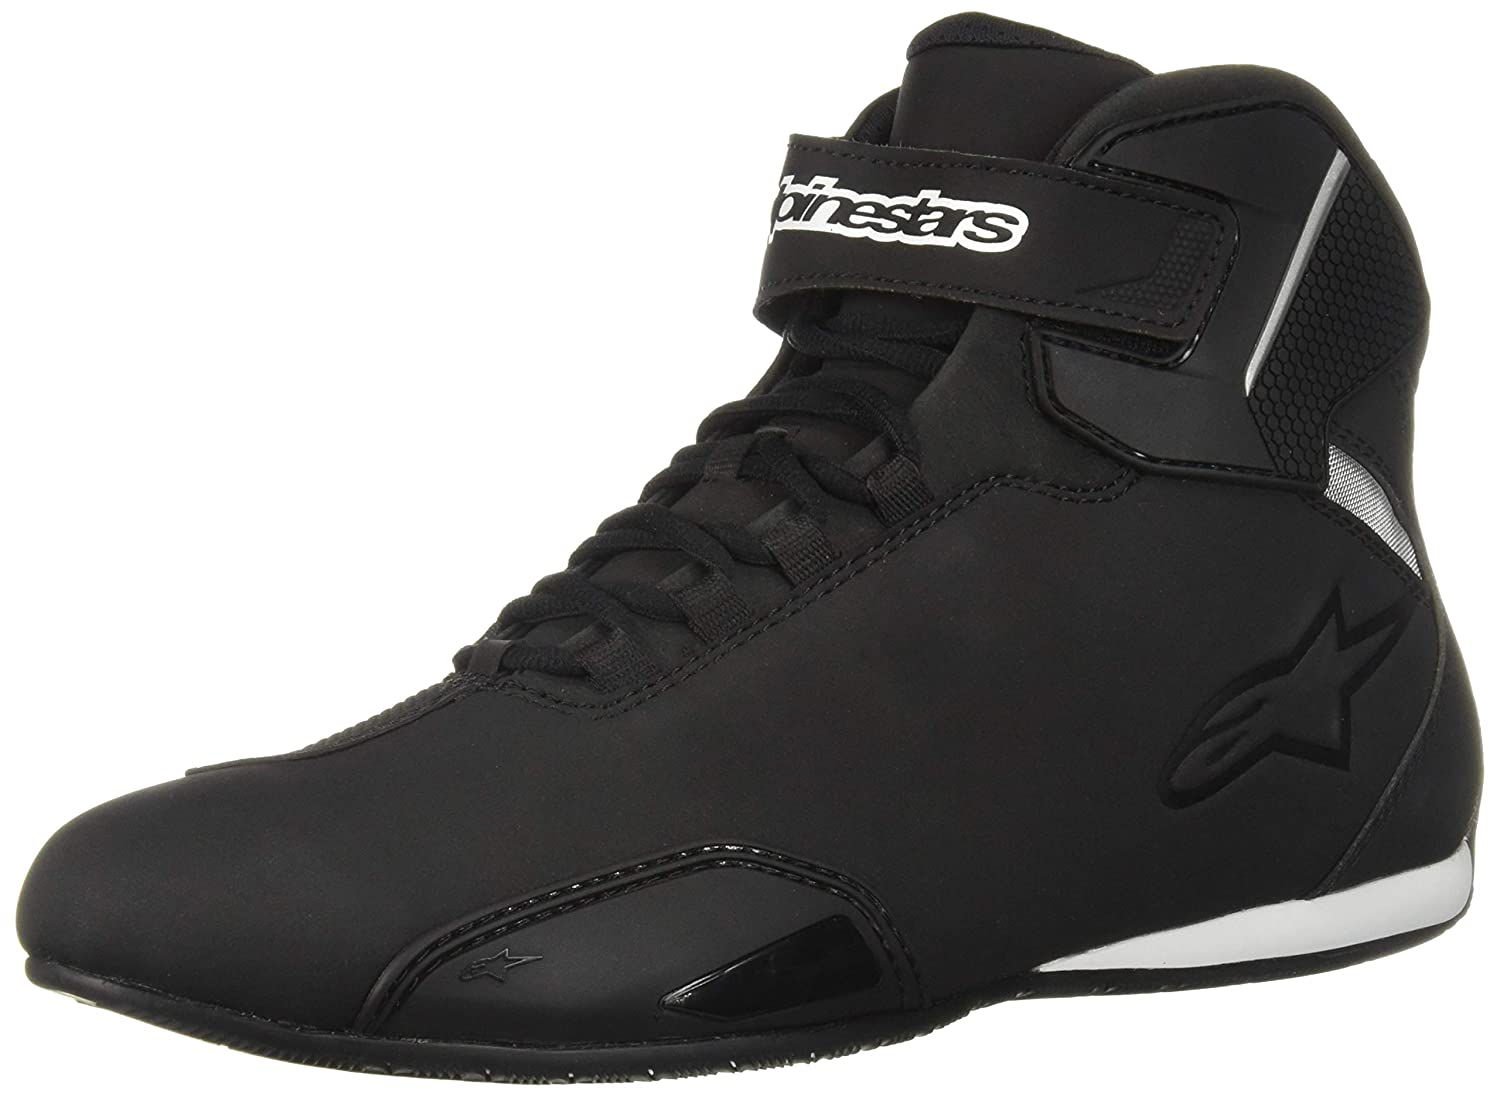 Alpinestars Mens 25155181011 Shoe Black Size 11